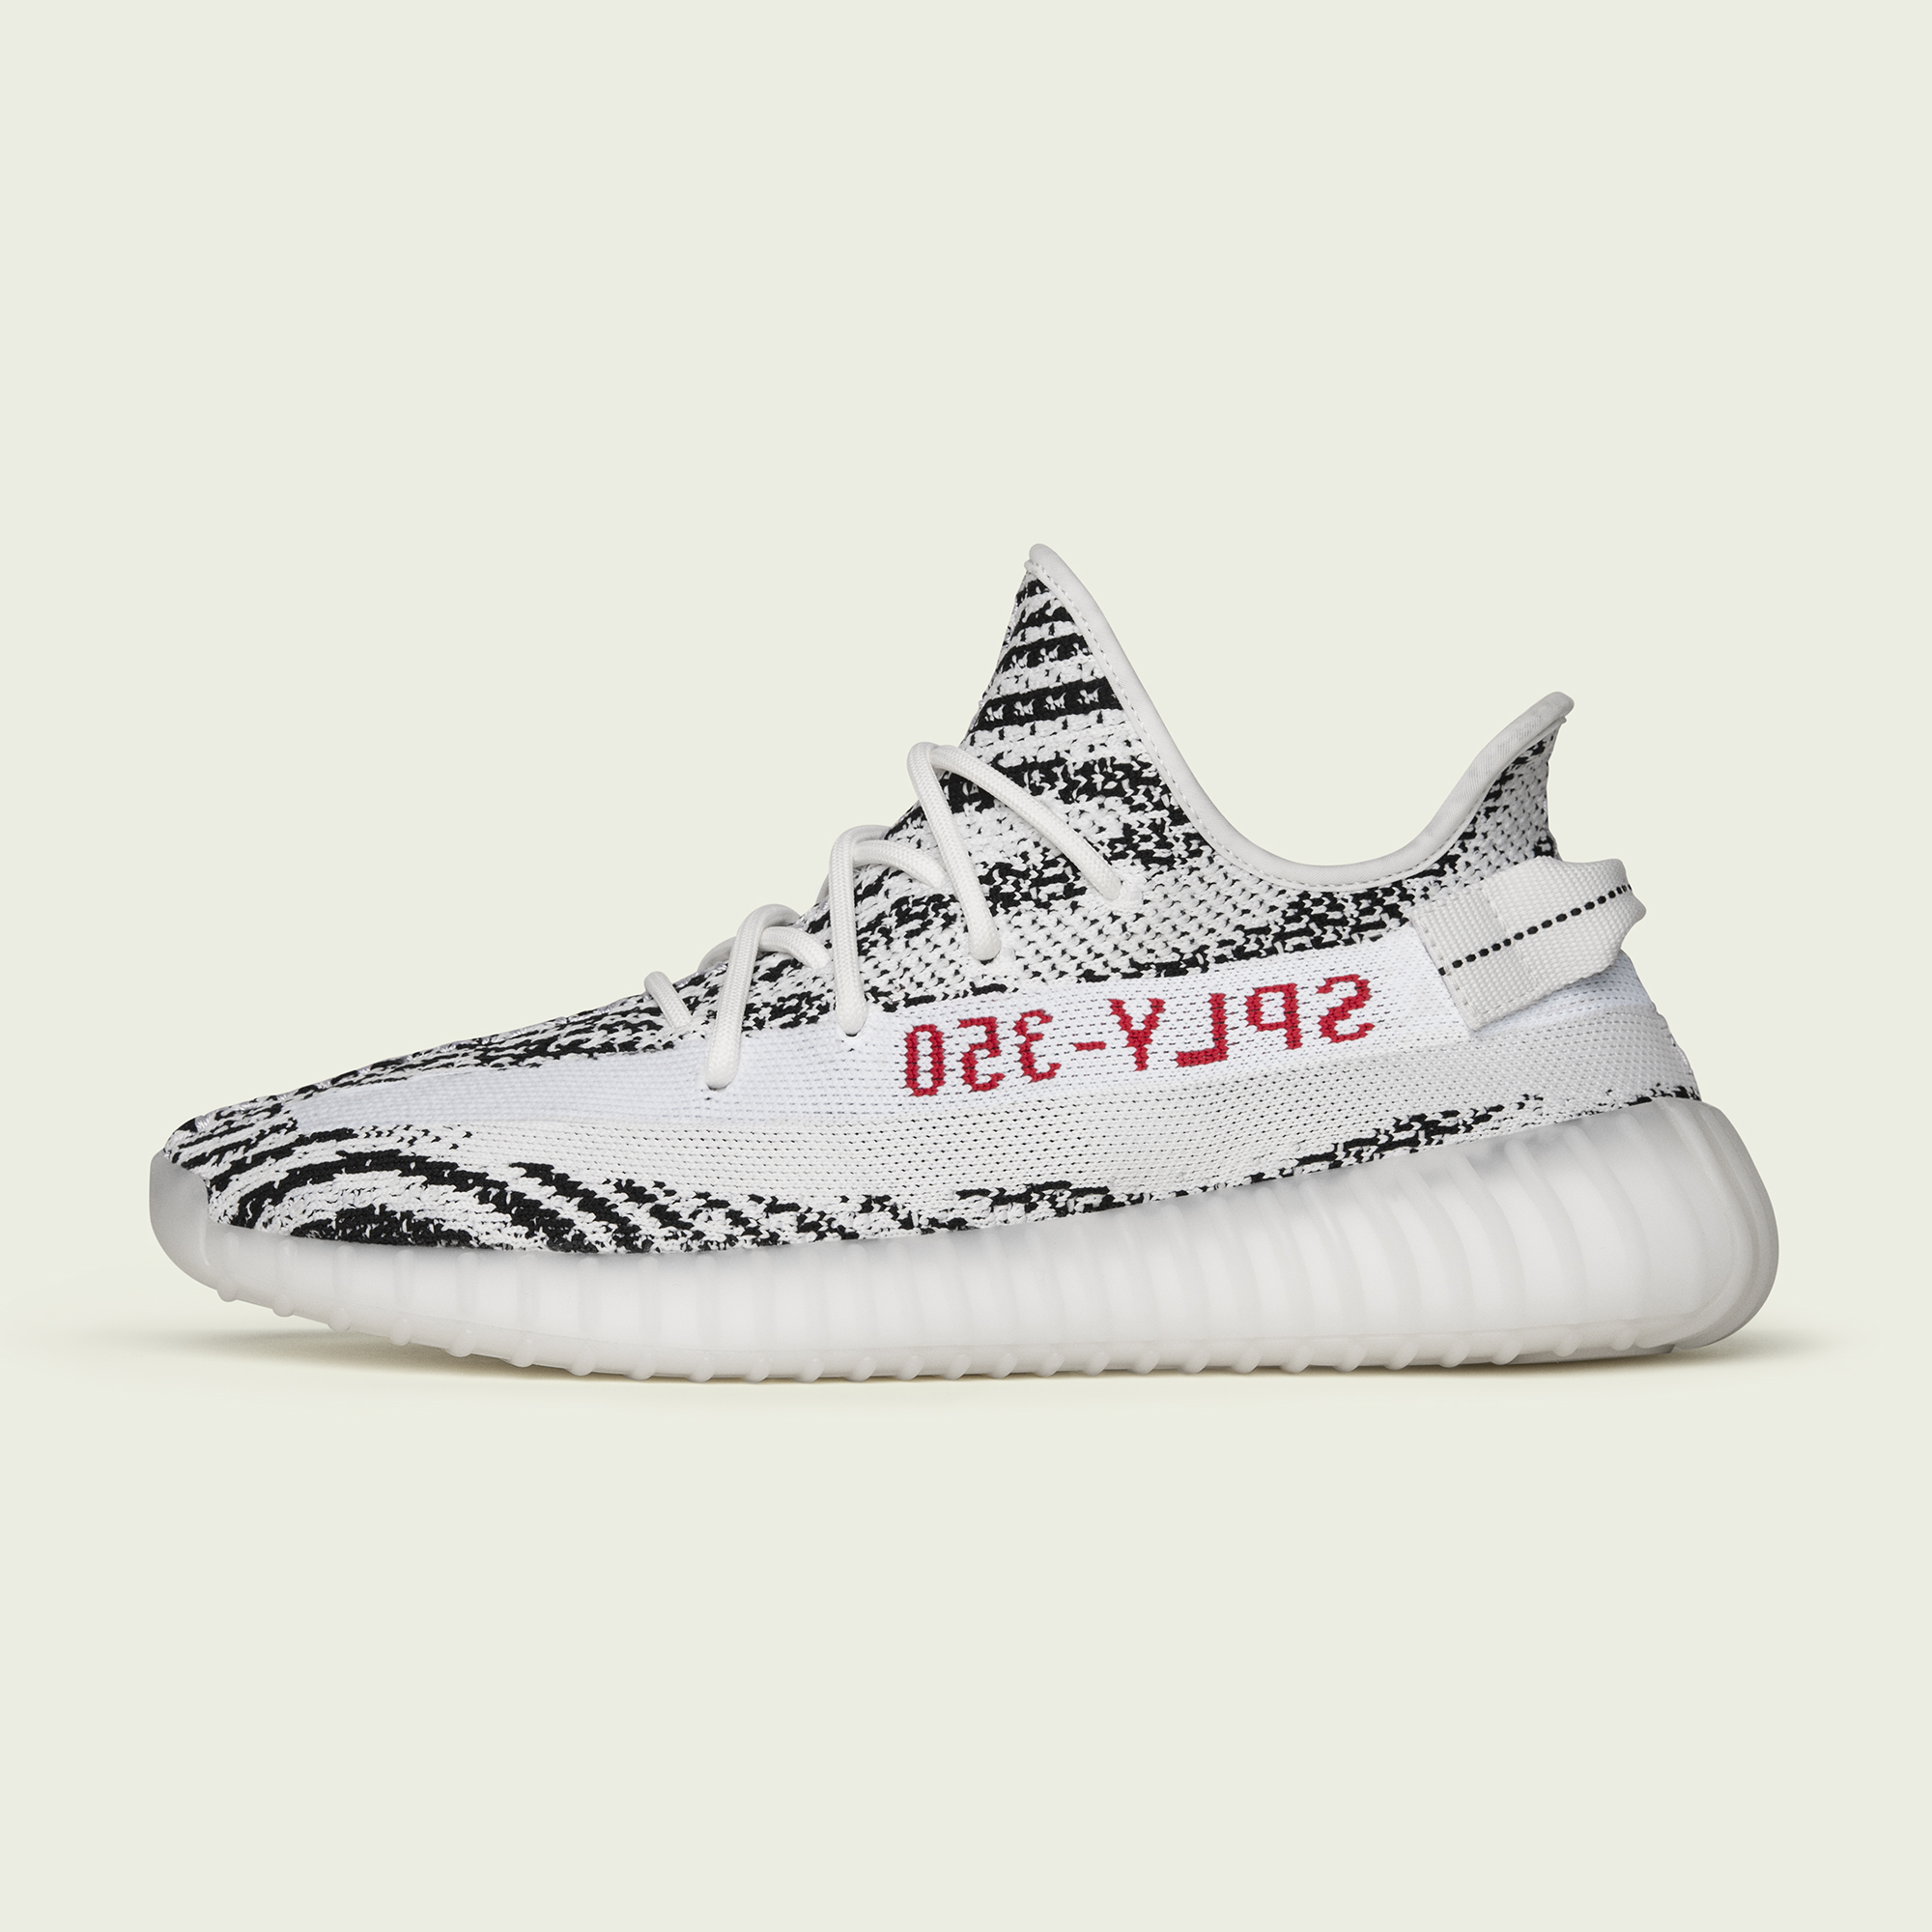 Cheap Yeezy Supply New Shoes, Cheap Yeezys 350 V2 Supply 2018